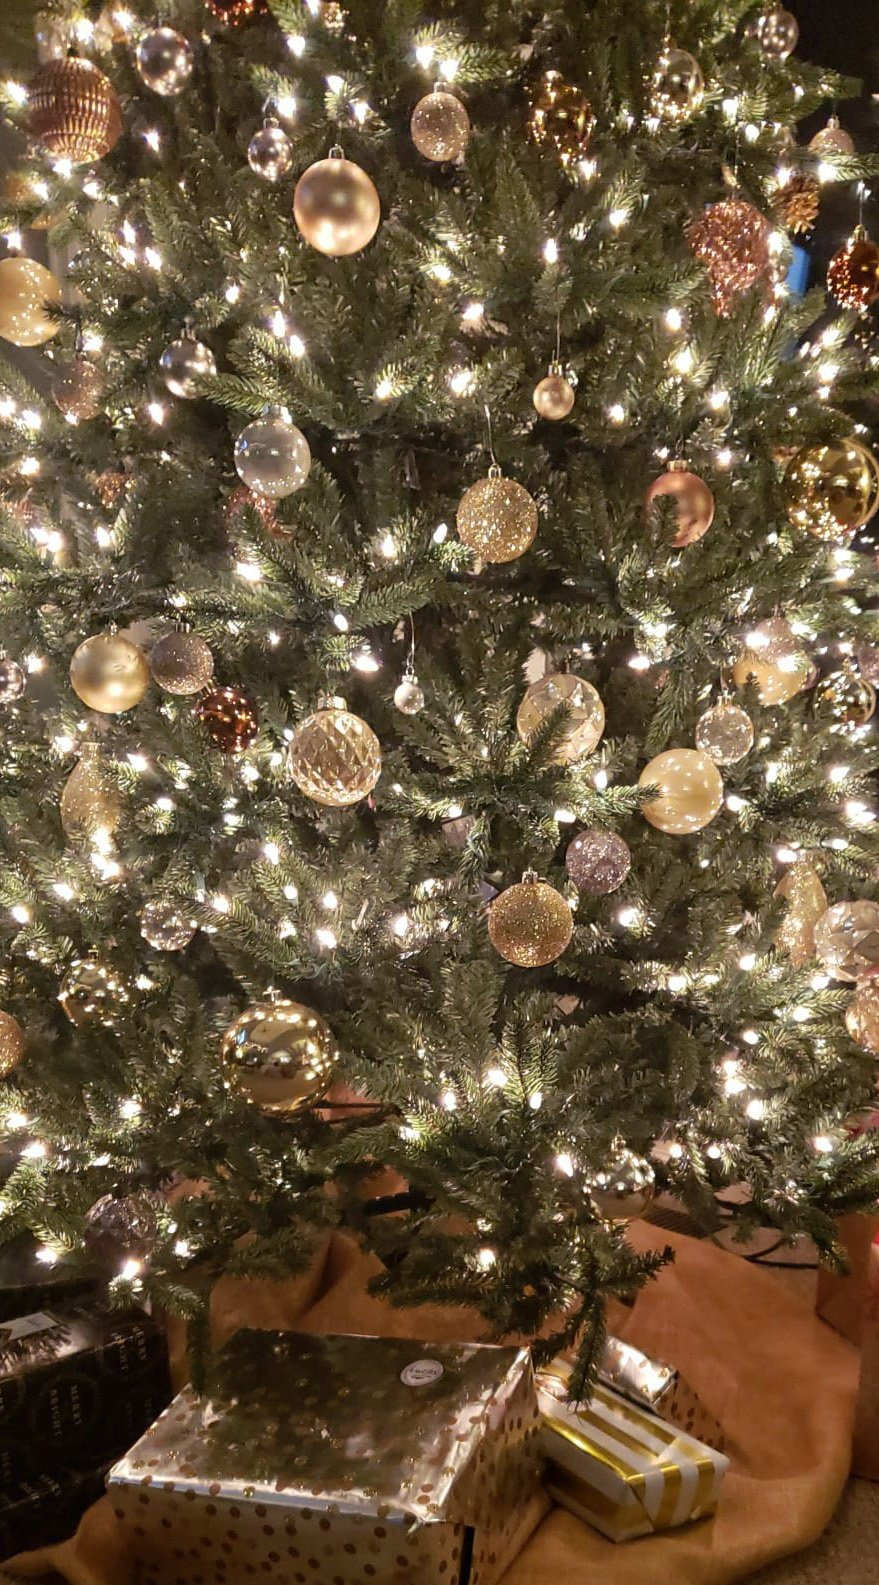 hristmas_tree_how_to_transition_from_holiday_decor_northeast_ohio_suzanne_m_Harvey-1.jpg